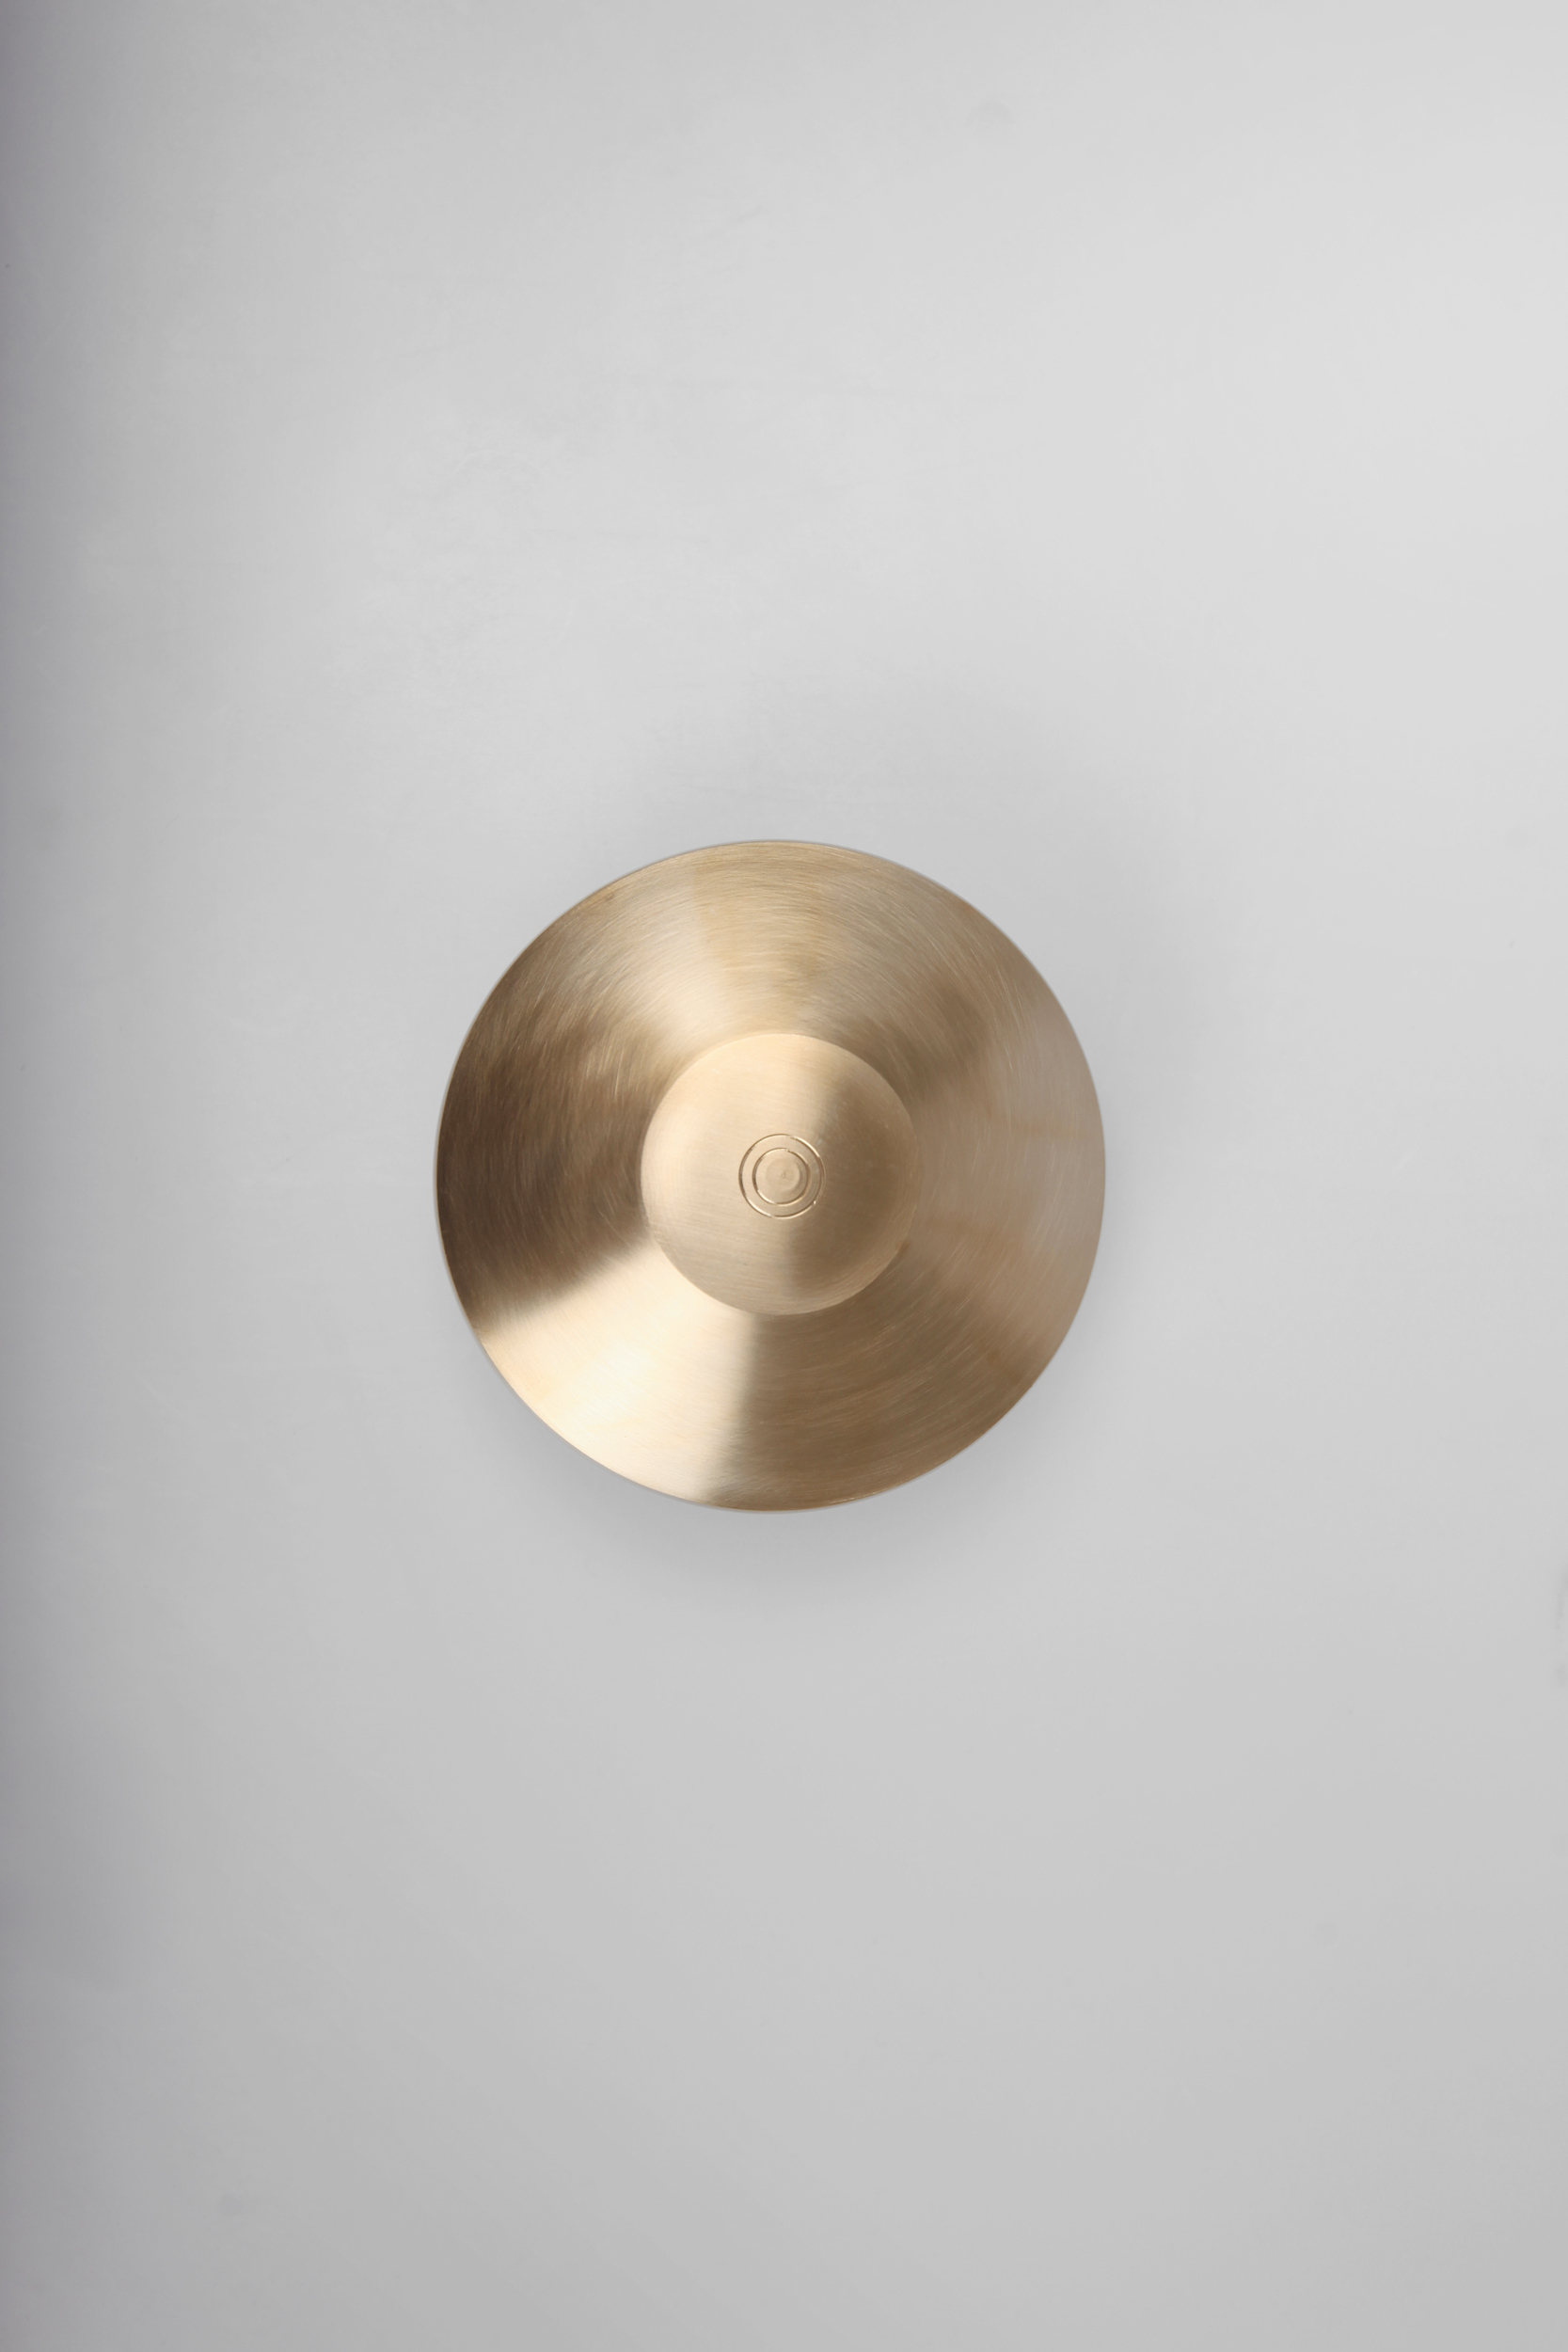 Tableware / brass / unknown